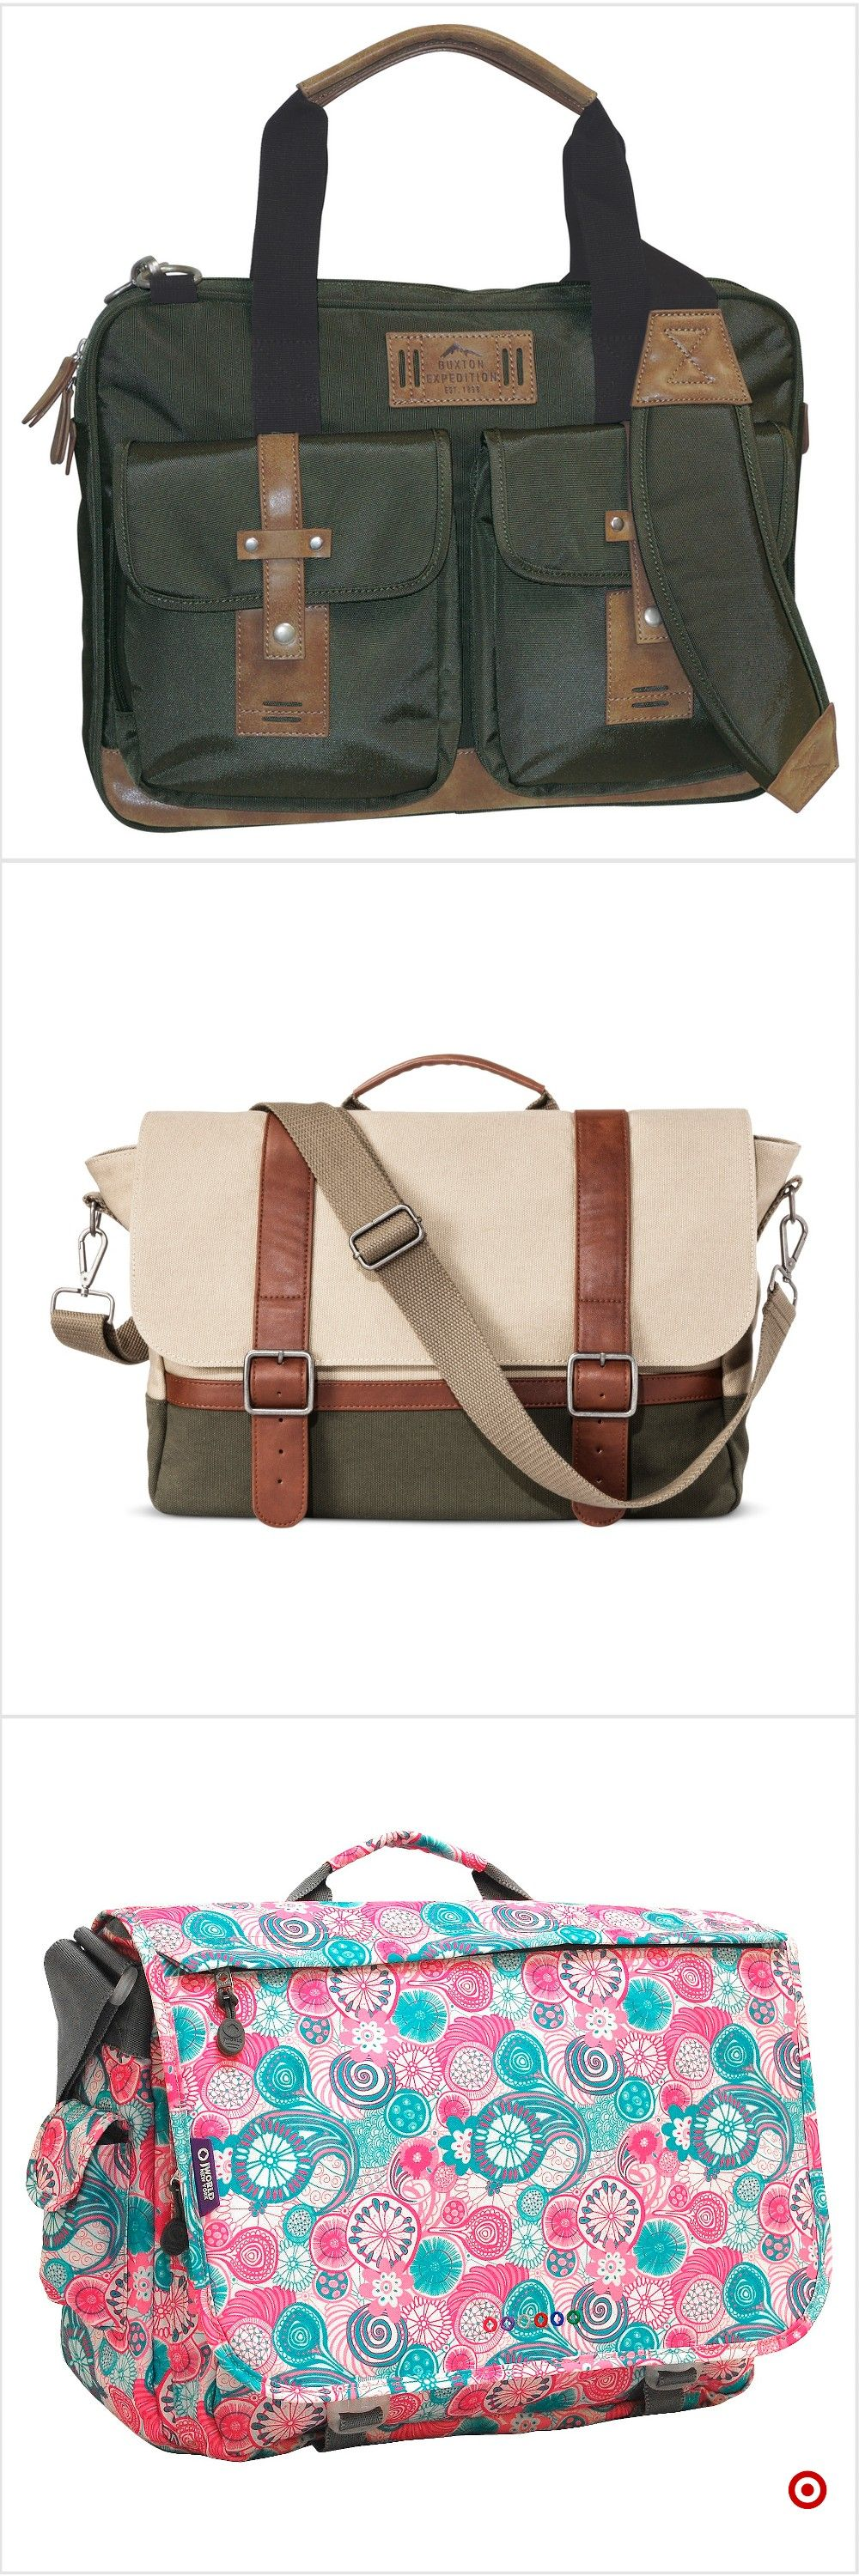 187c2ce79764 Shop Target for messenger bags you will love at great low prices. Free  shipping on orders of  35+ or free same-day pick-up in store.